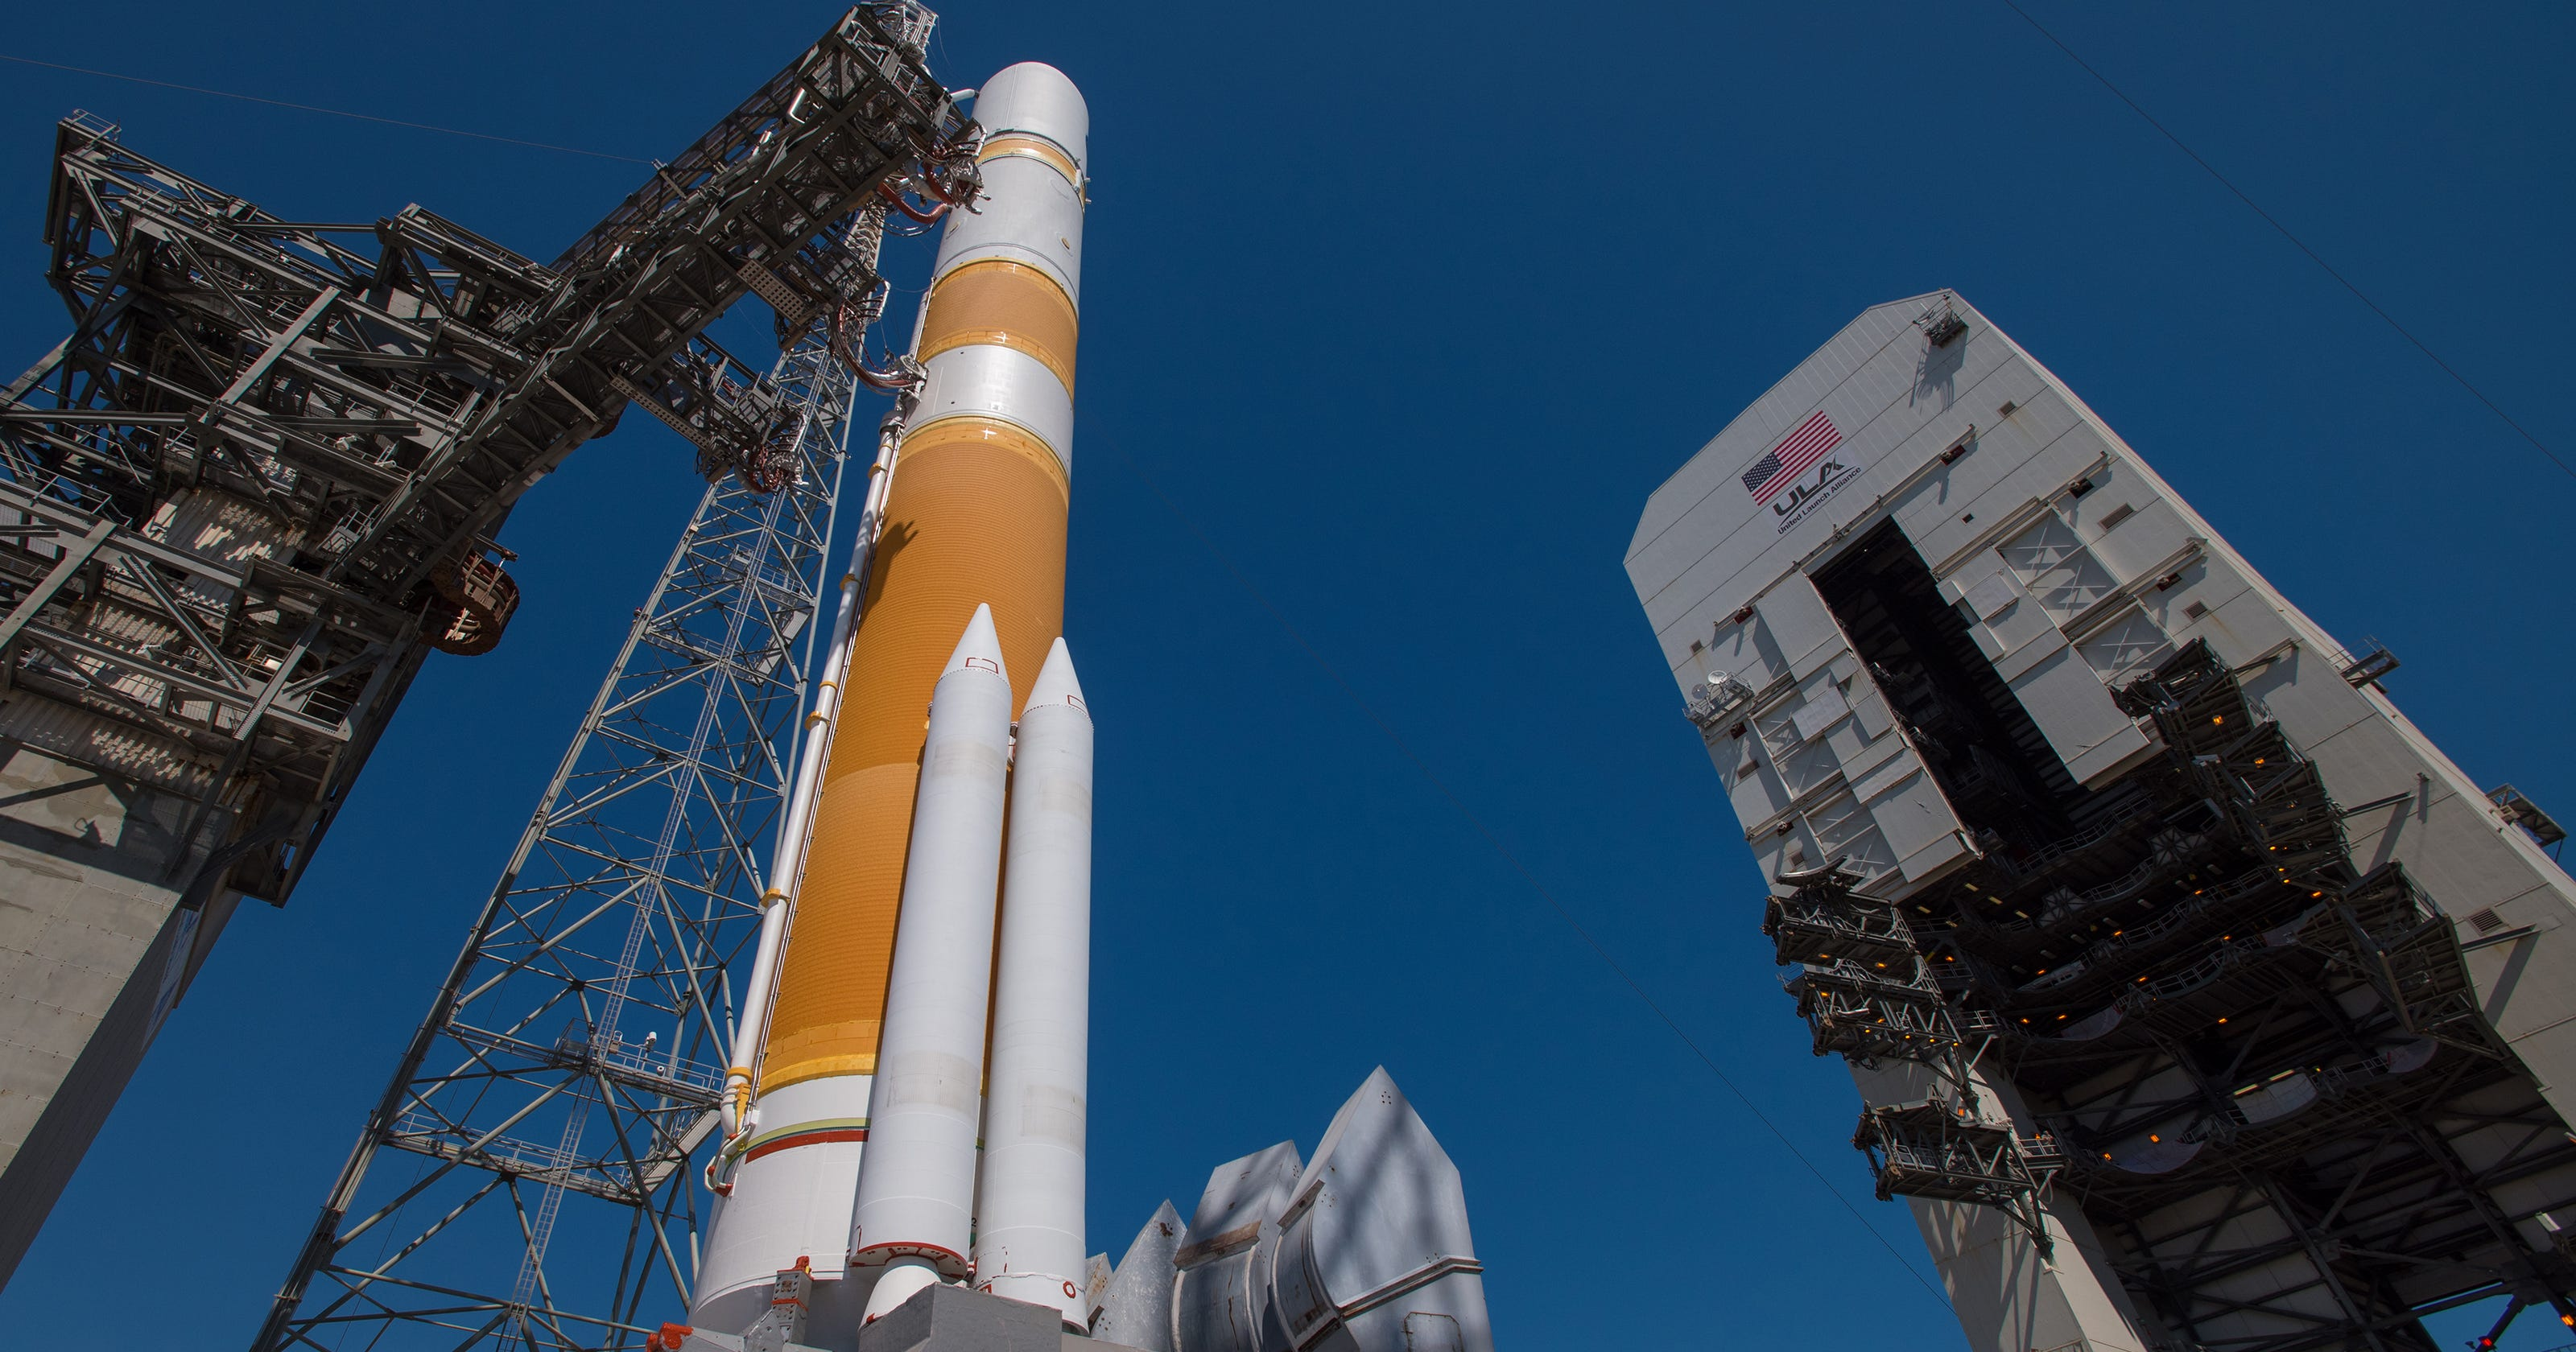 Updates: Delta IV Rocket Launches From Cape Canaveral